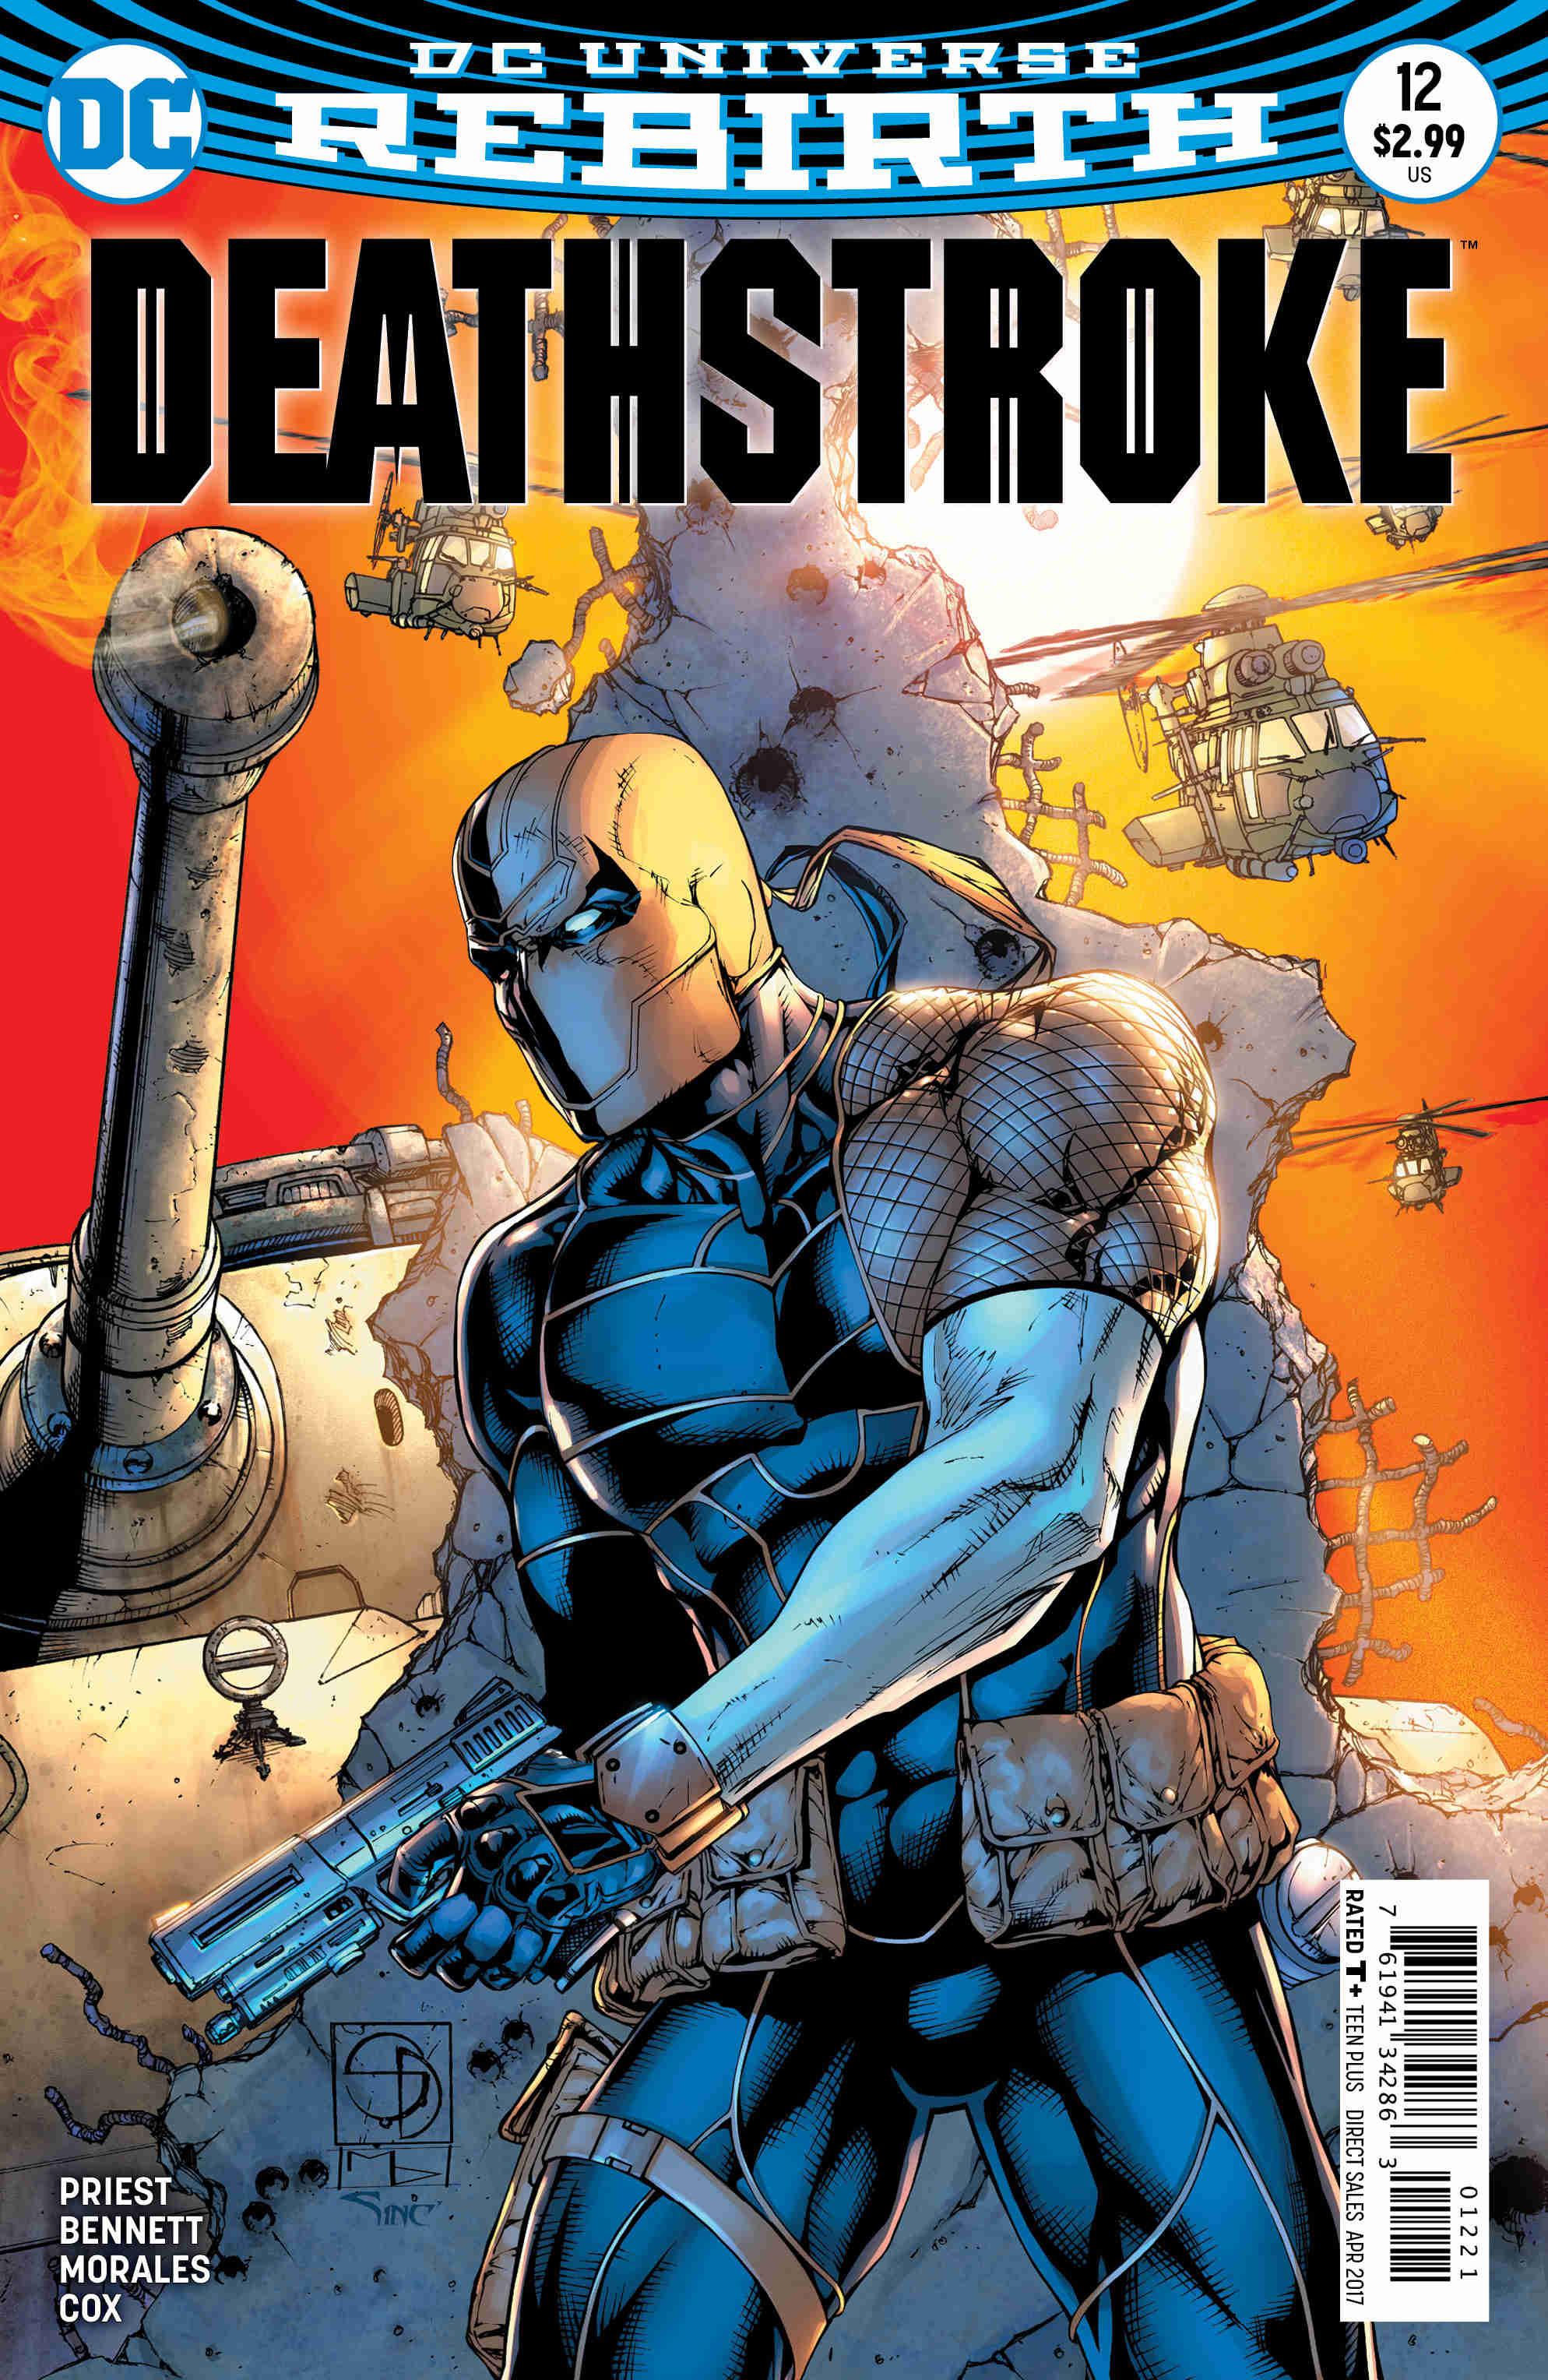 Deathstroke #12 Review